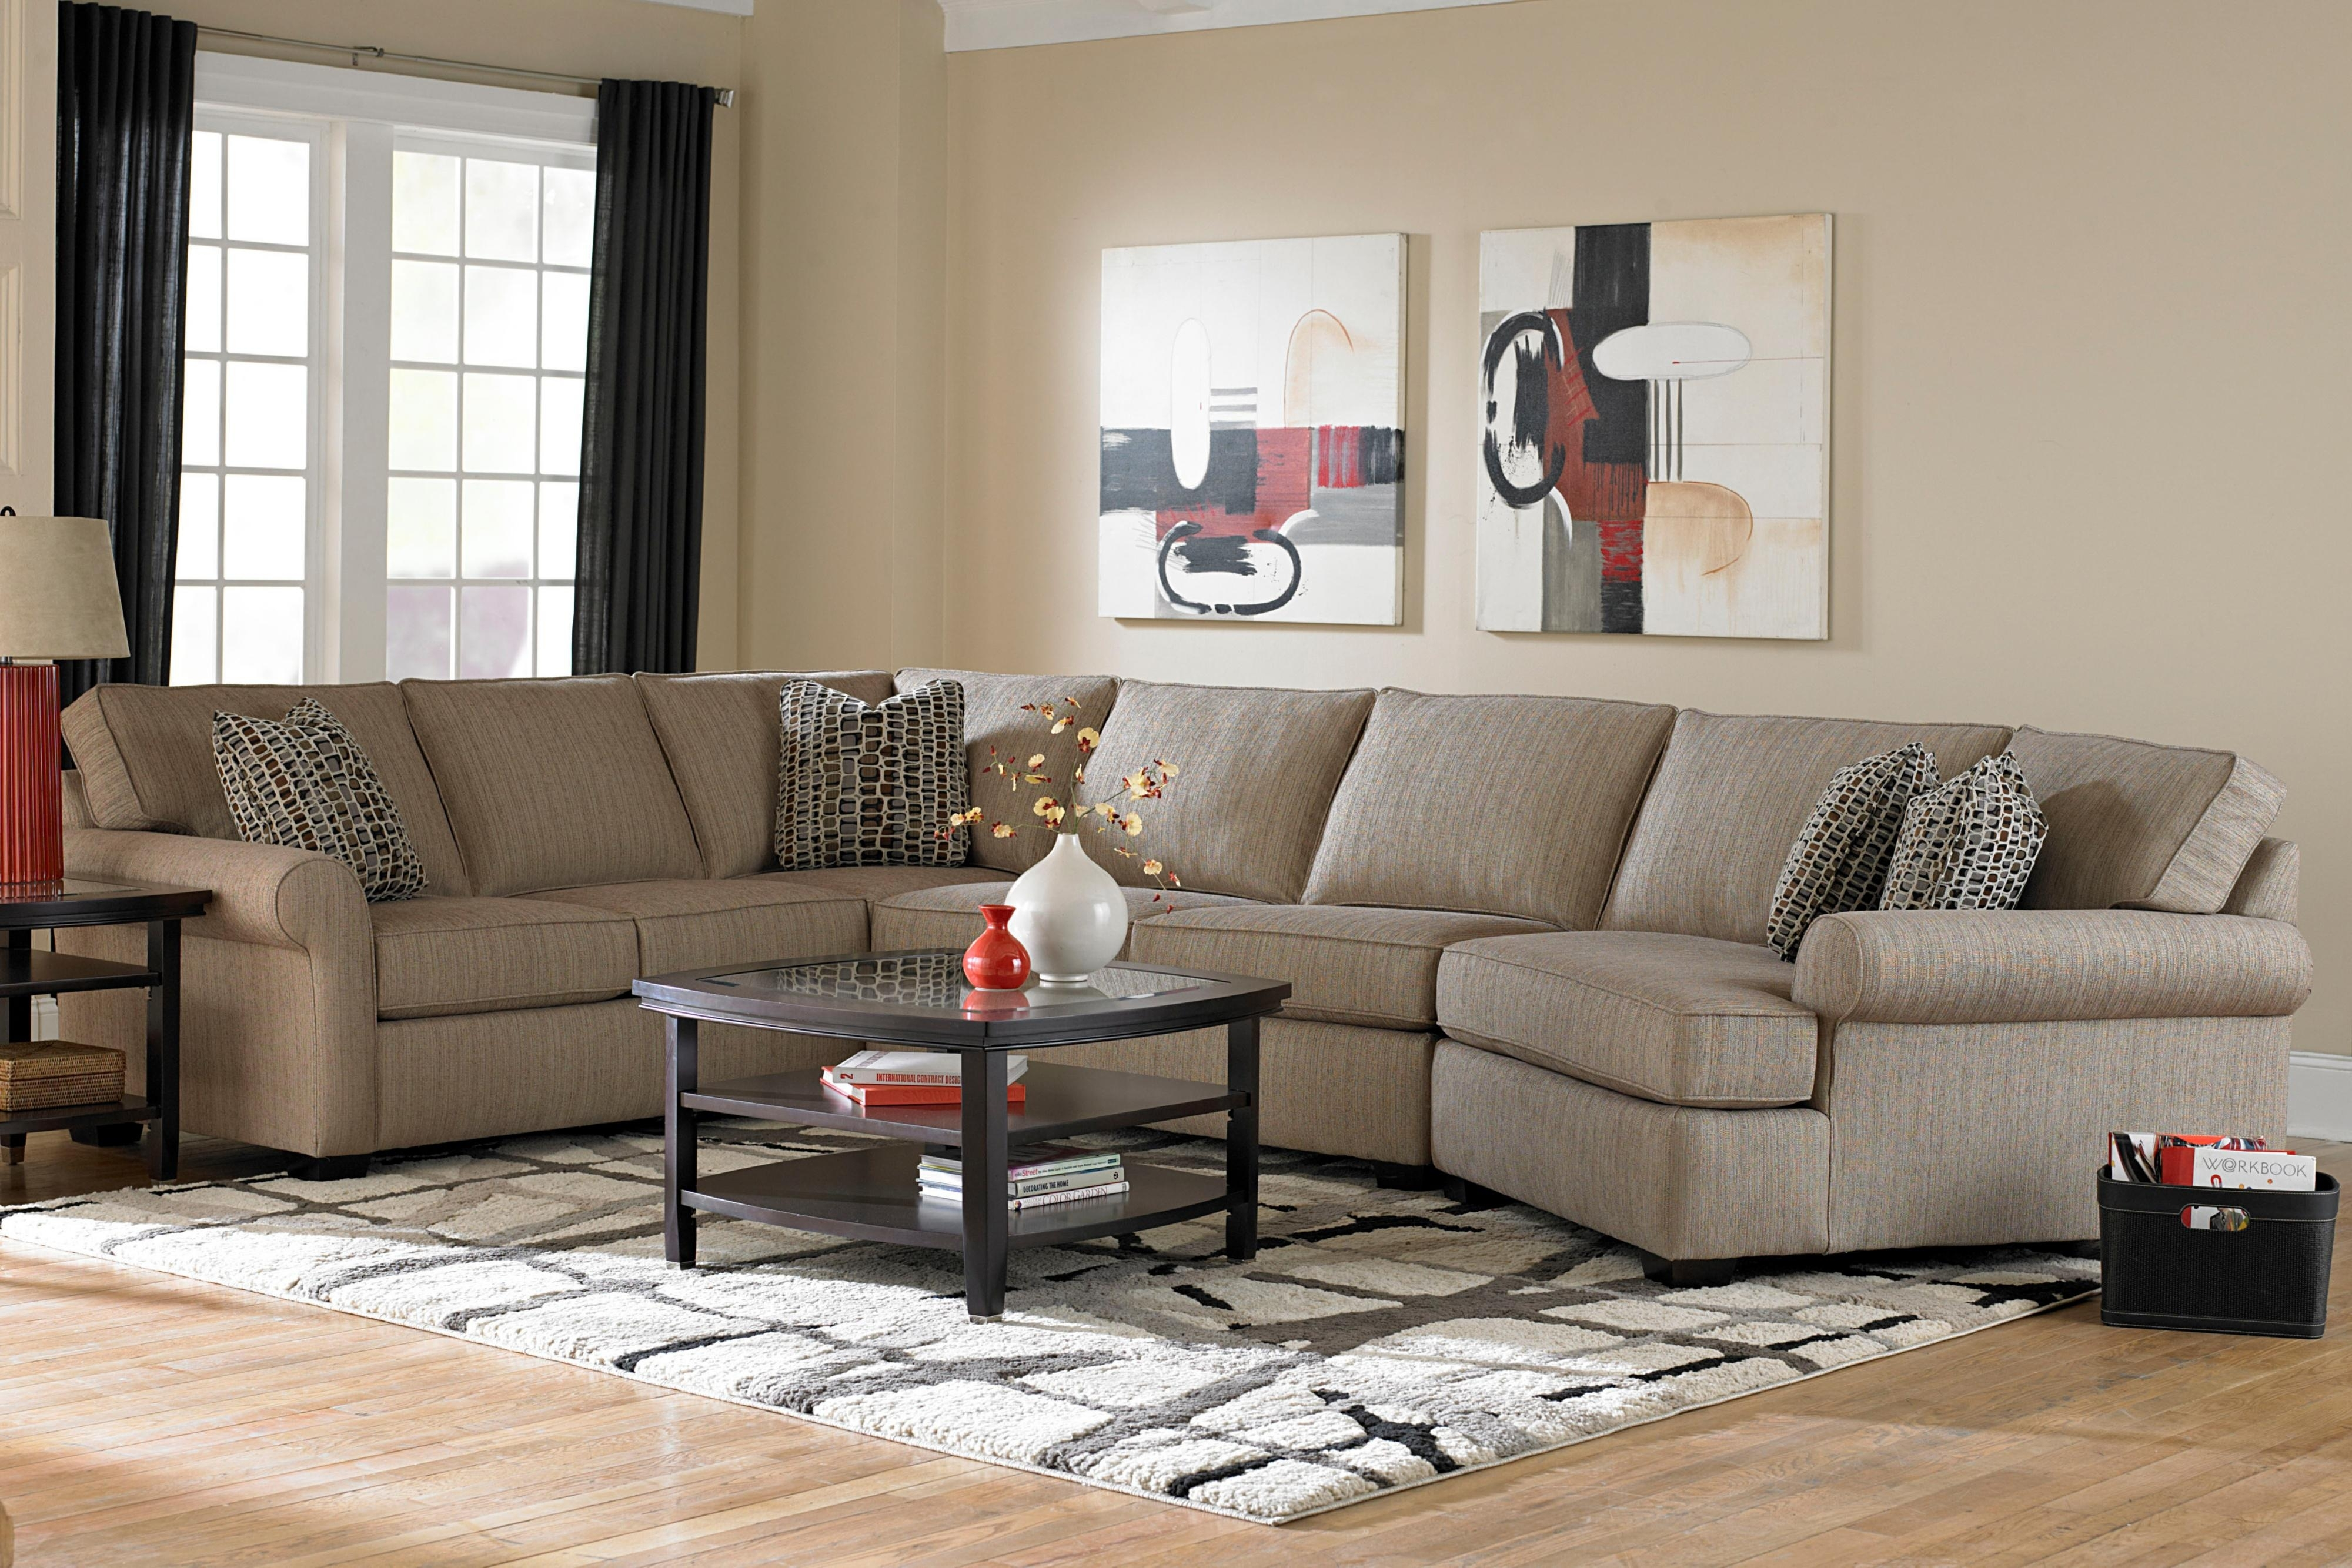 Broyhill Furniture Ethan Transitional Sectional Sofa With Right with regard to Benton 4 Piece Sectionals (Image 8 of 30)